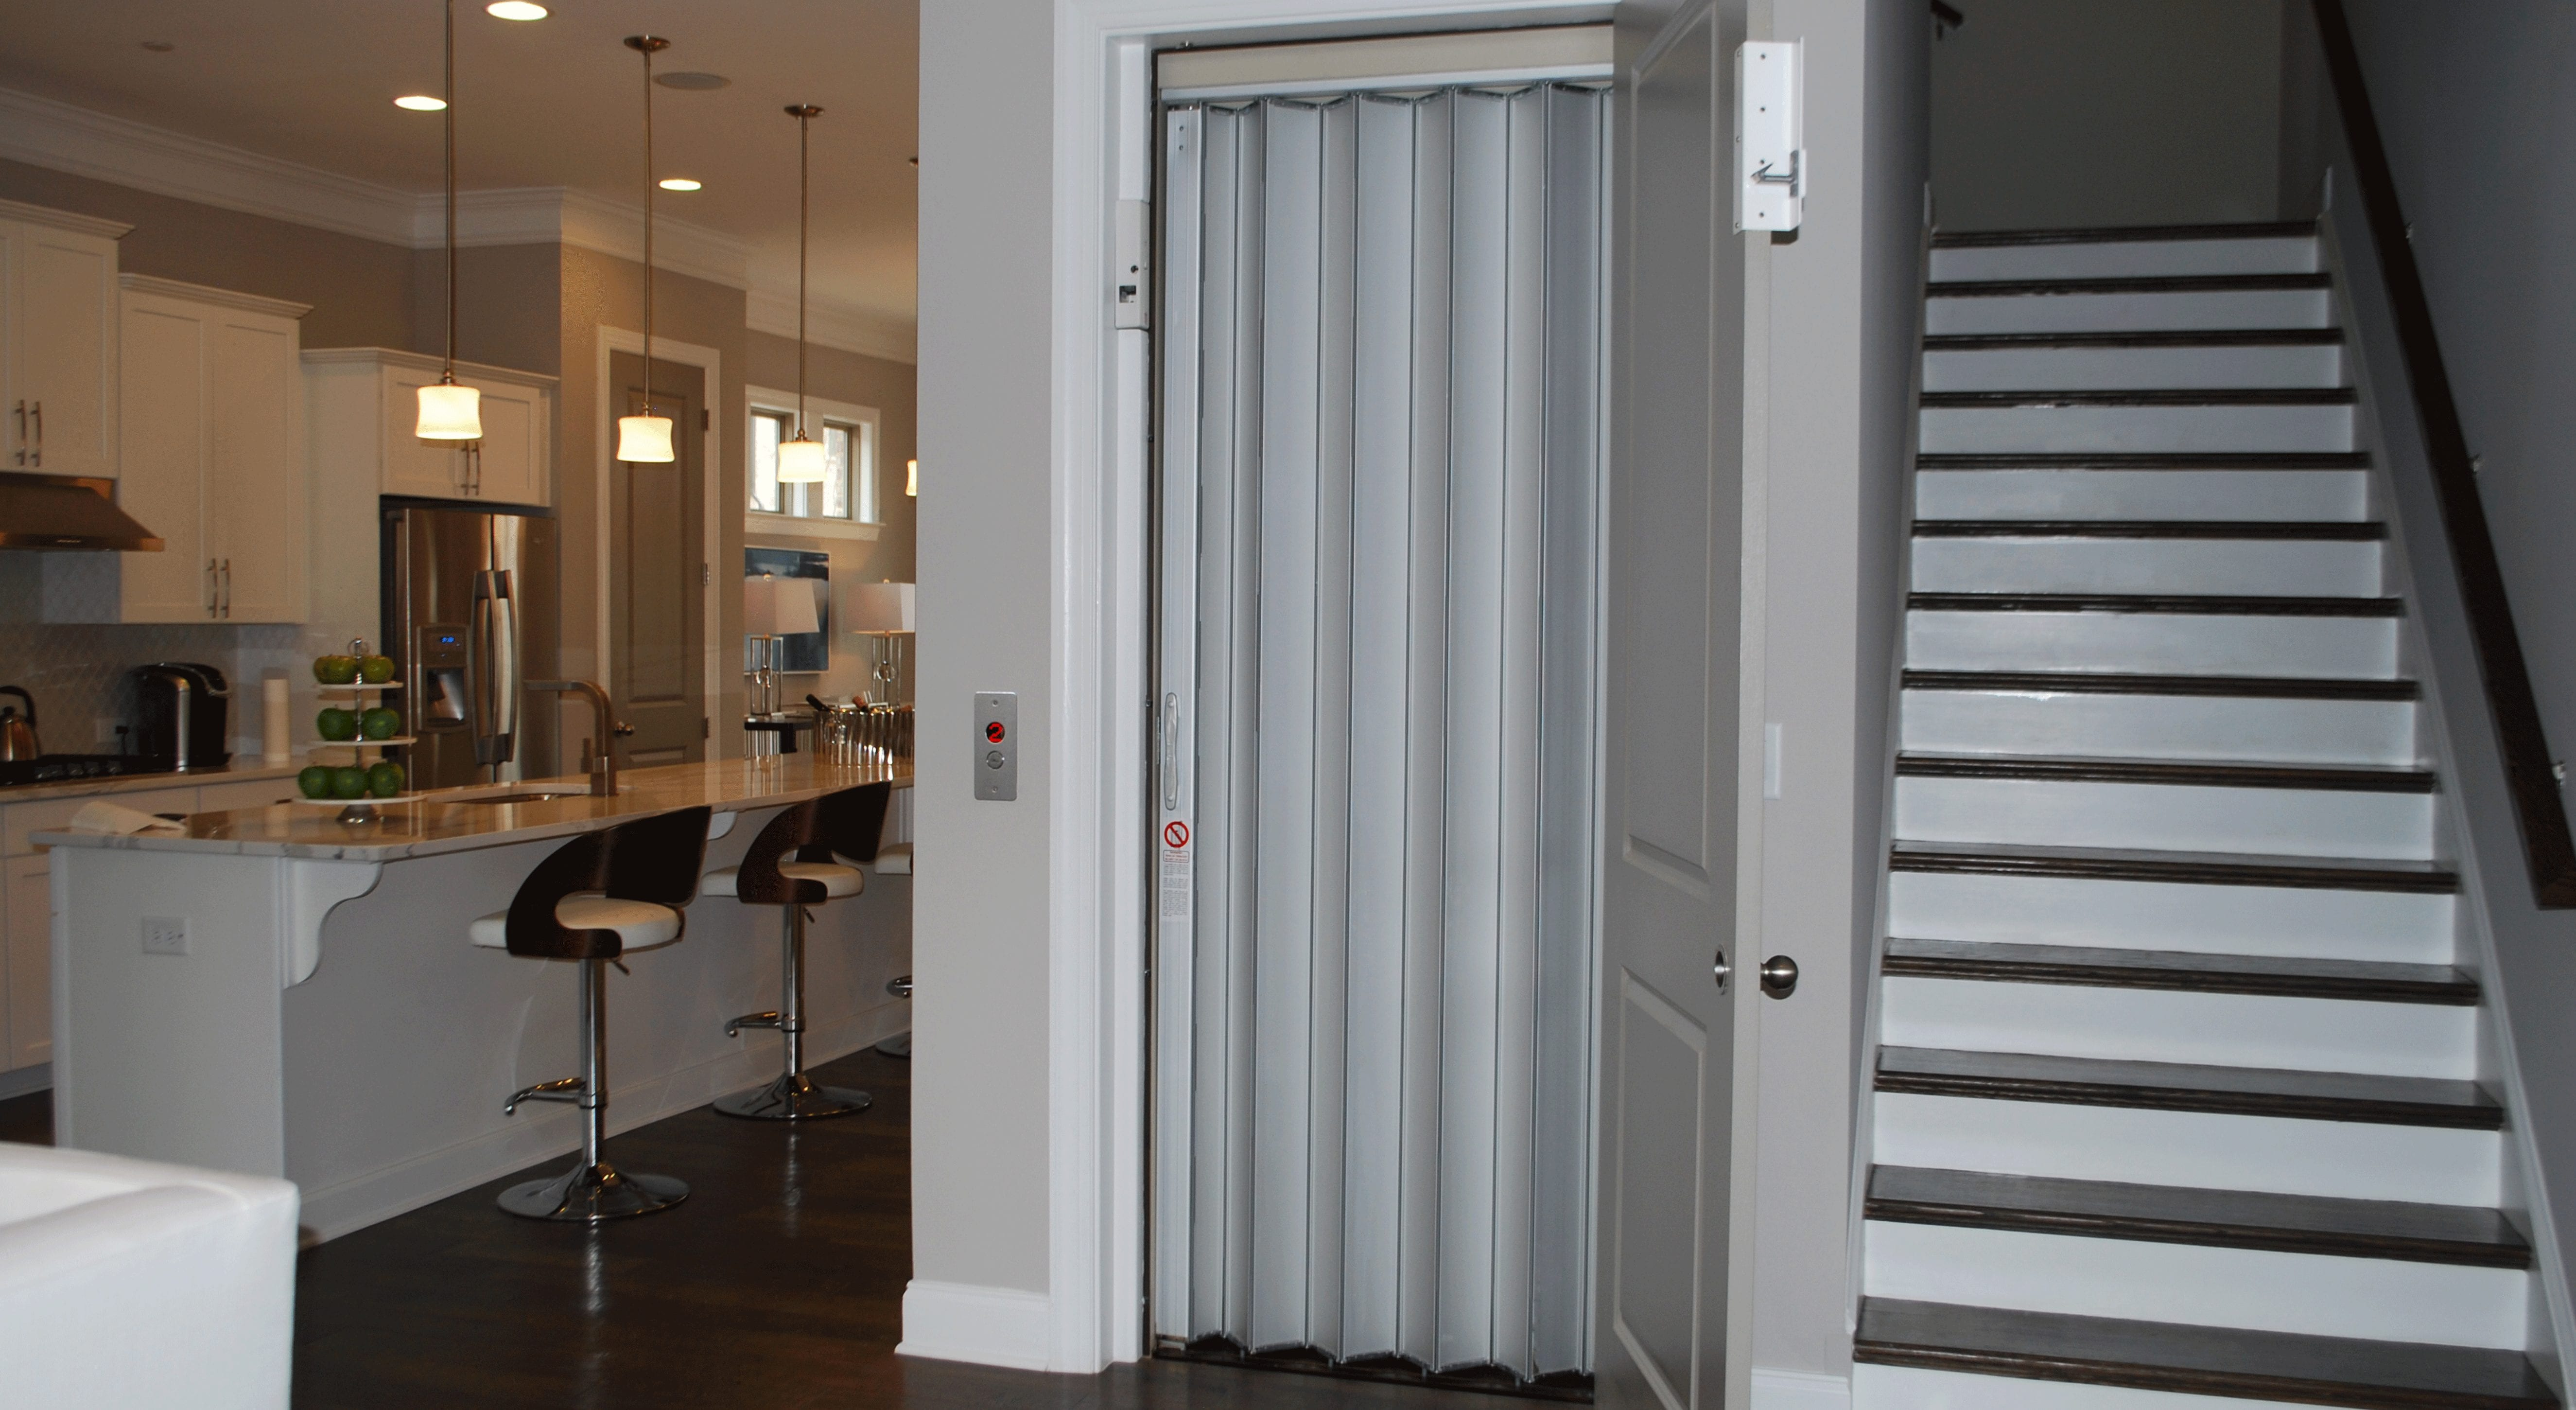 The Importance of the Home Elevator Entrance